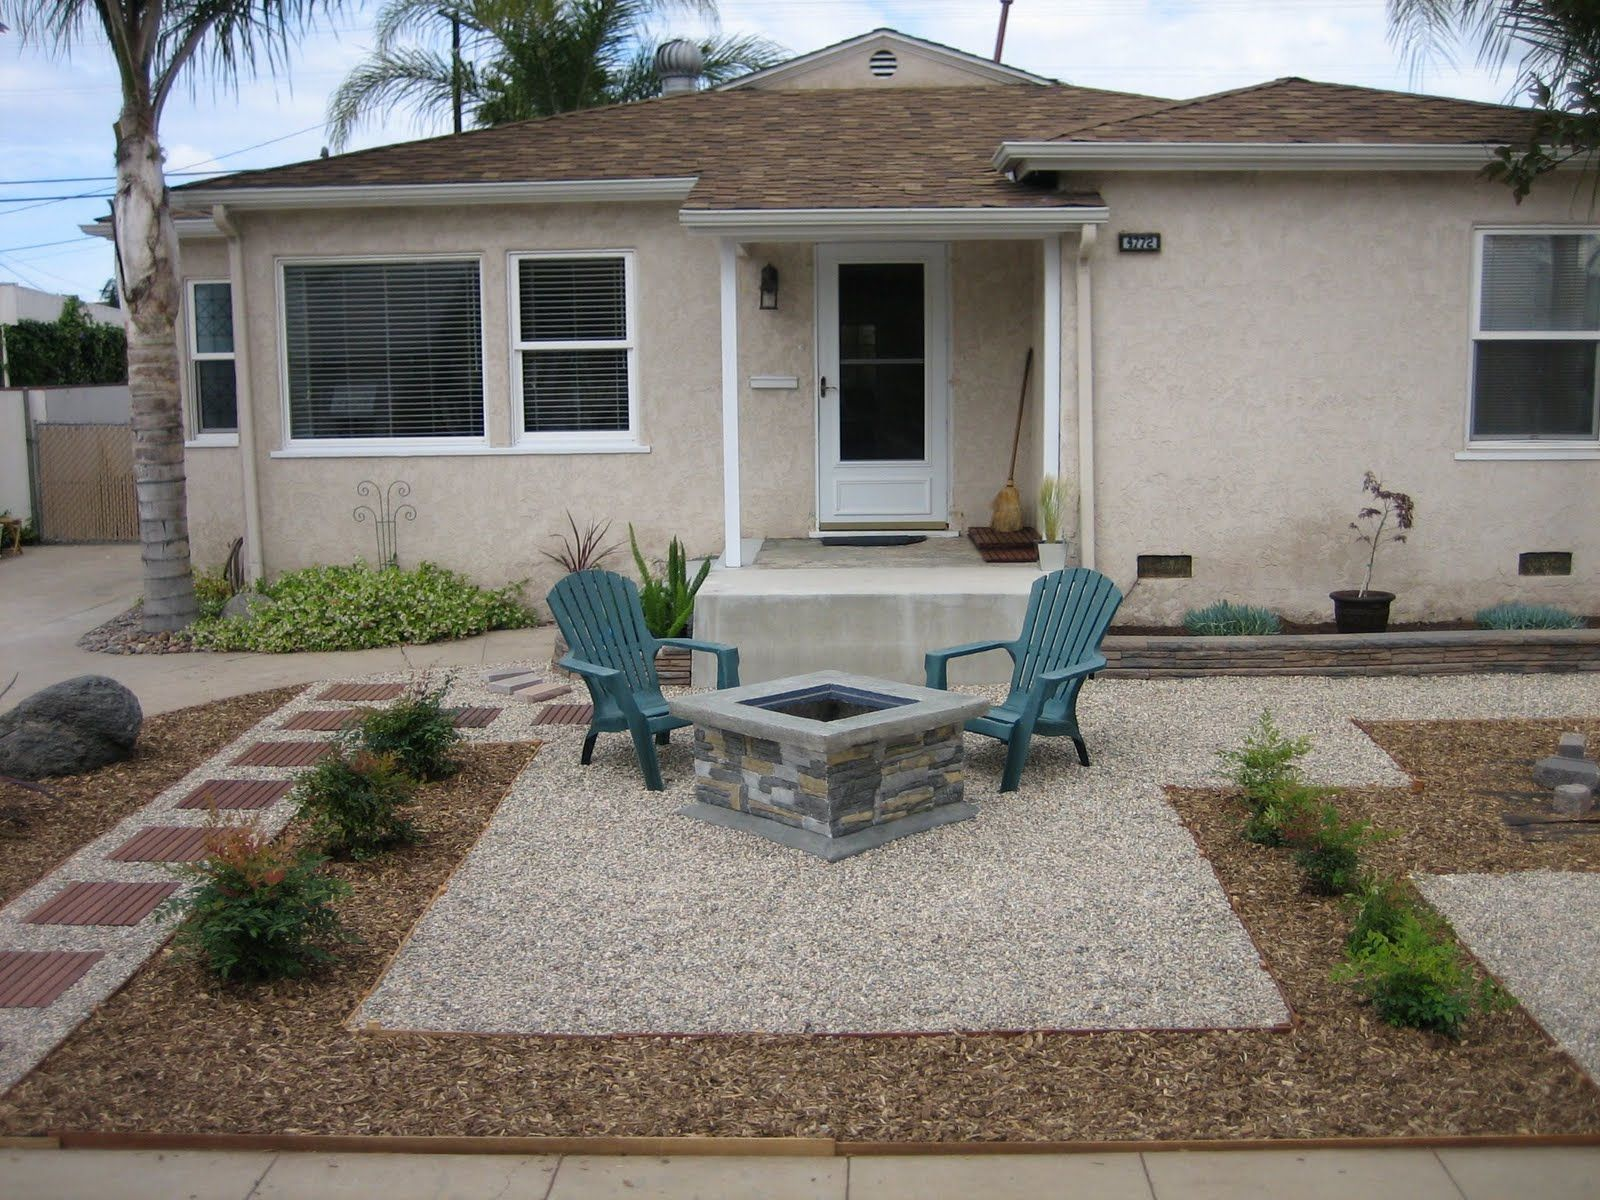 Drought Tolerant Backyard Designs image of drought tolerant landscape ideas for front yard Dedign Yard With Pea Gravel And Bark Project Profile Sustainable Drought Tolerant